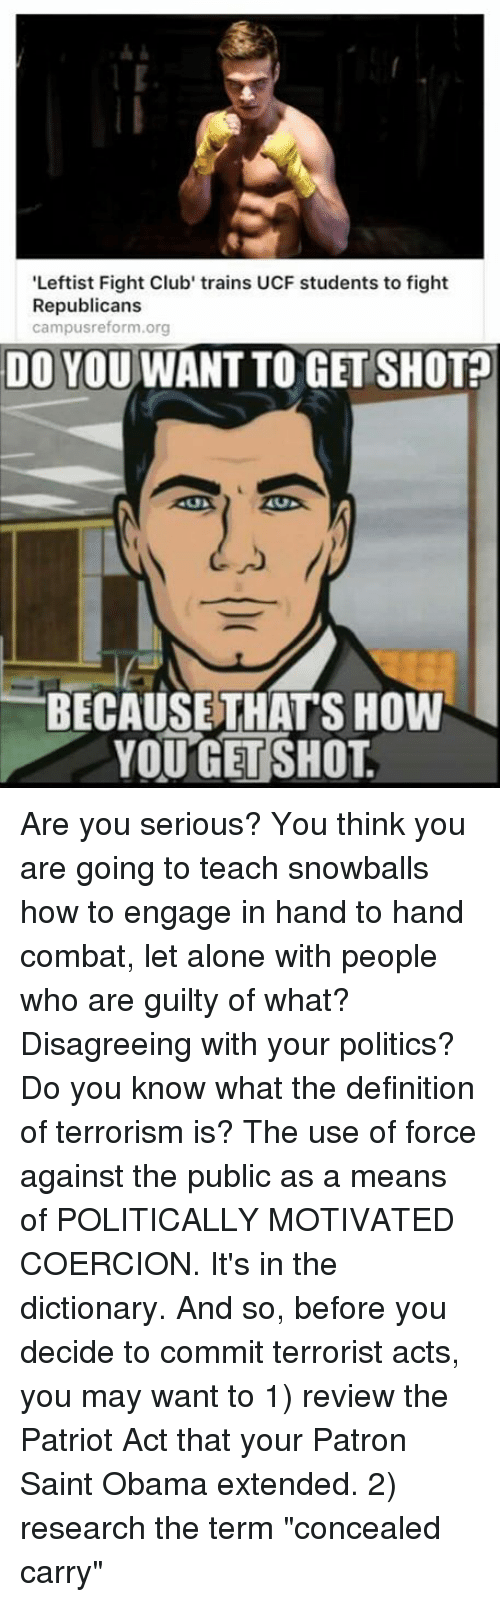 """the patriot: 'Leftist Fight Club' trains UCF students to fight  Republicans  campusreform.org  DO YOU WANTTO GET SHOT  BECAUSE THATS HOW  YOU GET SHOT Are you serious? You think you are going to teach snowballs how to engage in hand to hand combat, let alone with people who are guilty of what?  Disagreeing with your politics?  Do you know what the definition of terrorism is?  The use of force against the public as a means of POLITICALLY MOTIVATED COERCION.   It's in the dictionary.  And so, before you decide to commit terrorist acts, you may want to 1) review the Patriot Act that your Patron Saint Obama extended. 2) research the term """"concealed carry"""""""